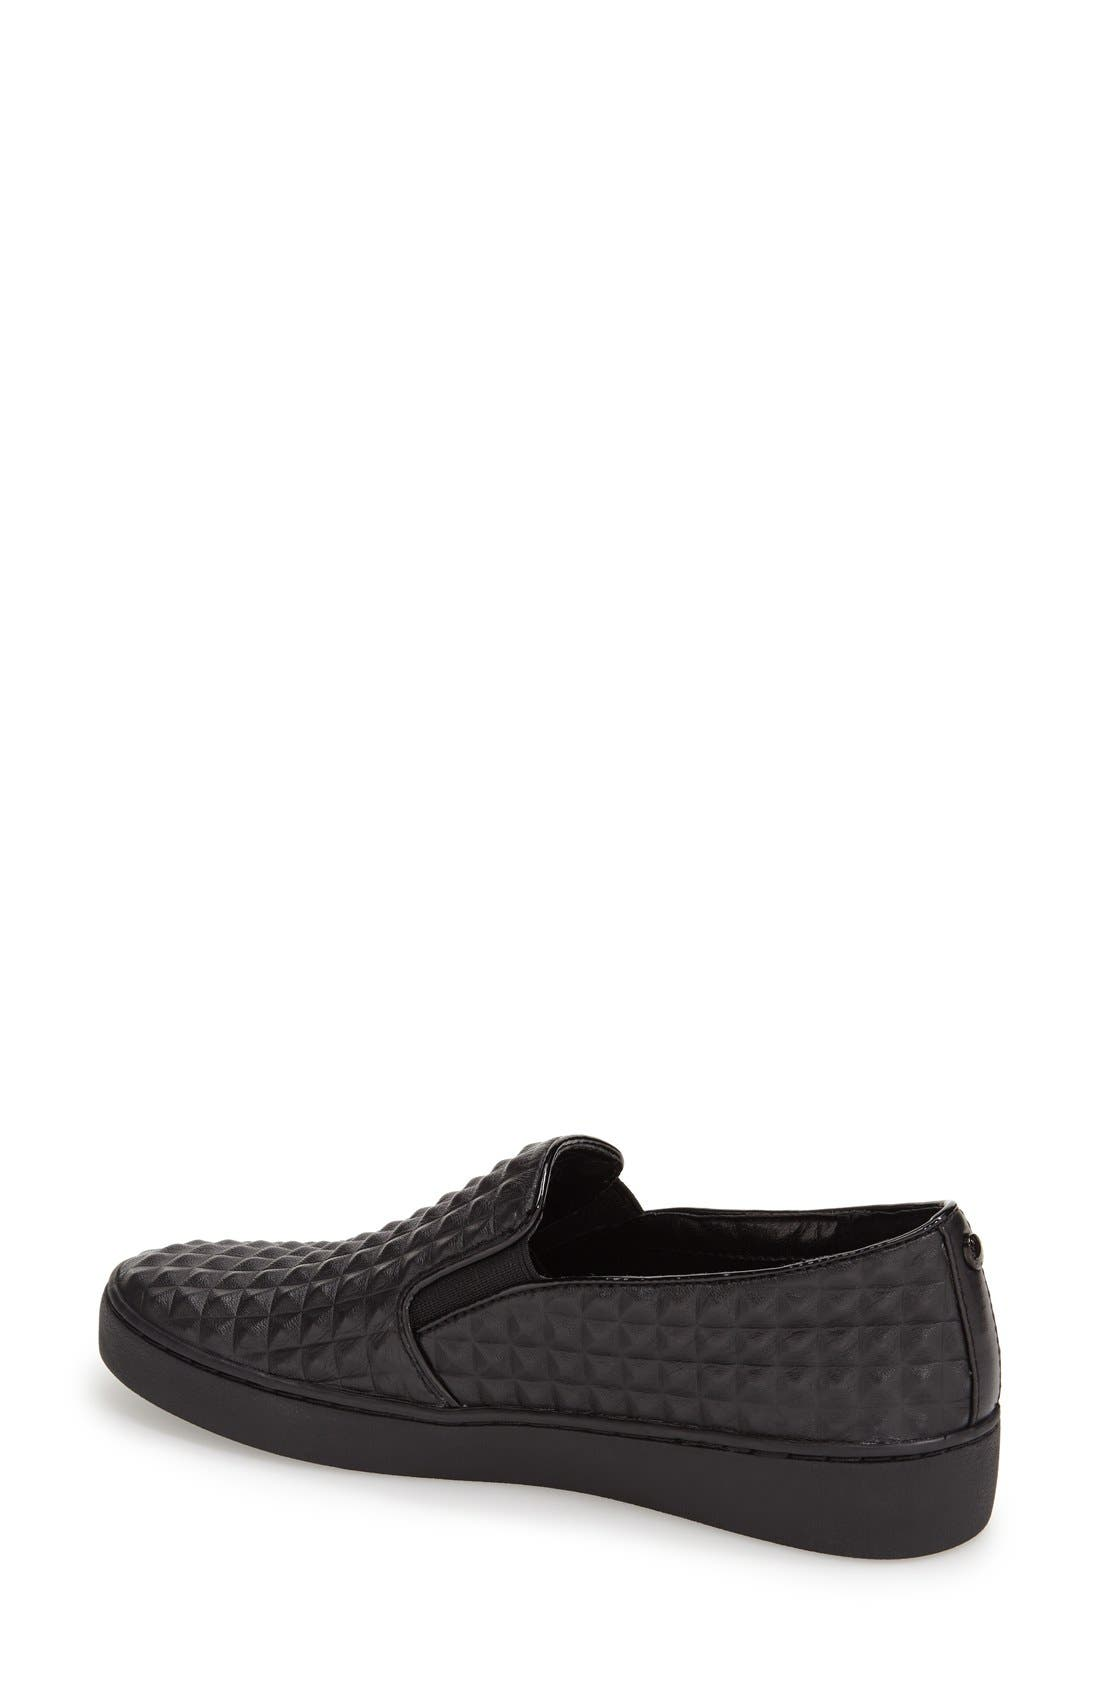 Alternate Image 2  - MICHAEL Michael Kors 'Pratt' Studded Slip-On Sneaker (Women)